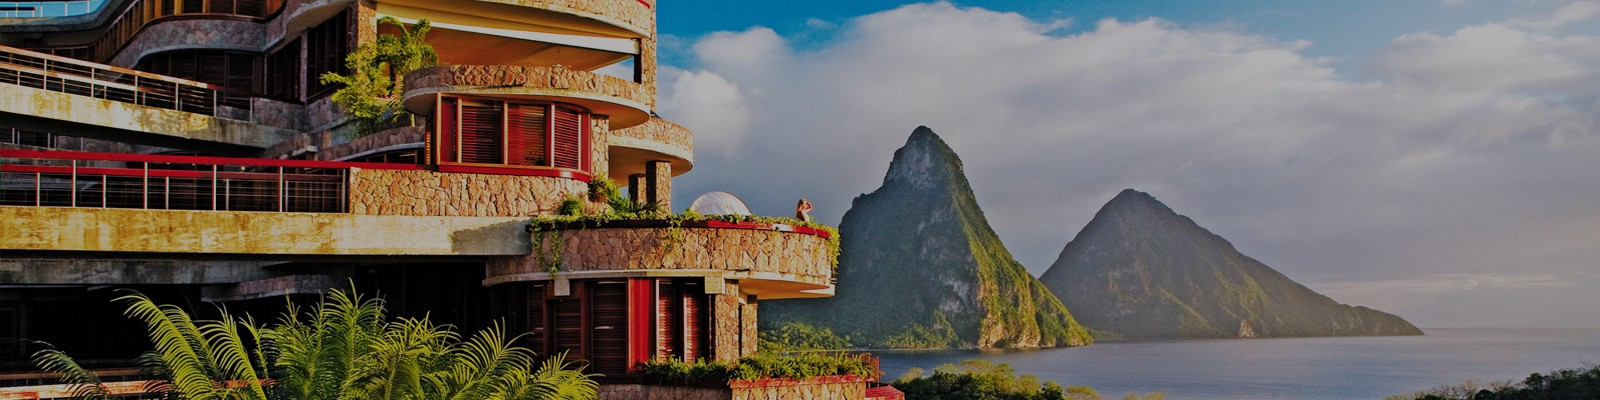 jade mountain st lucia honeymoon